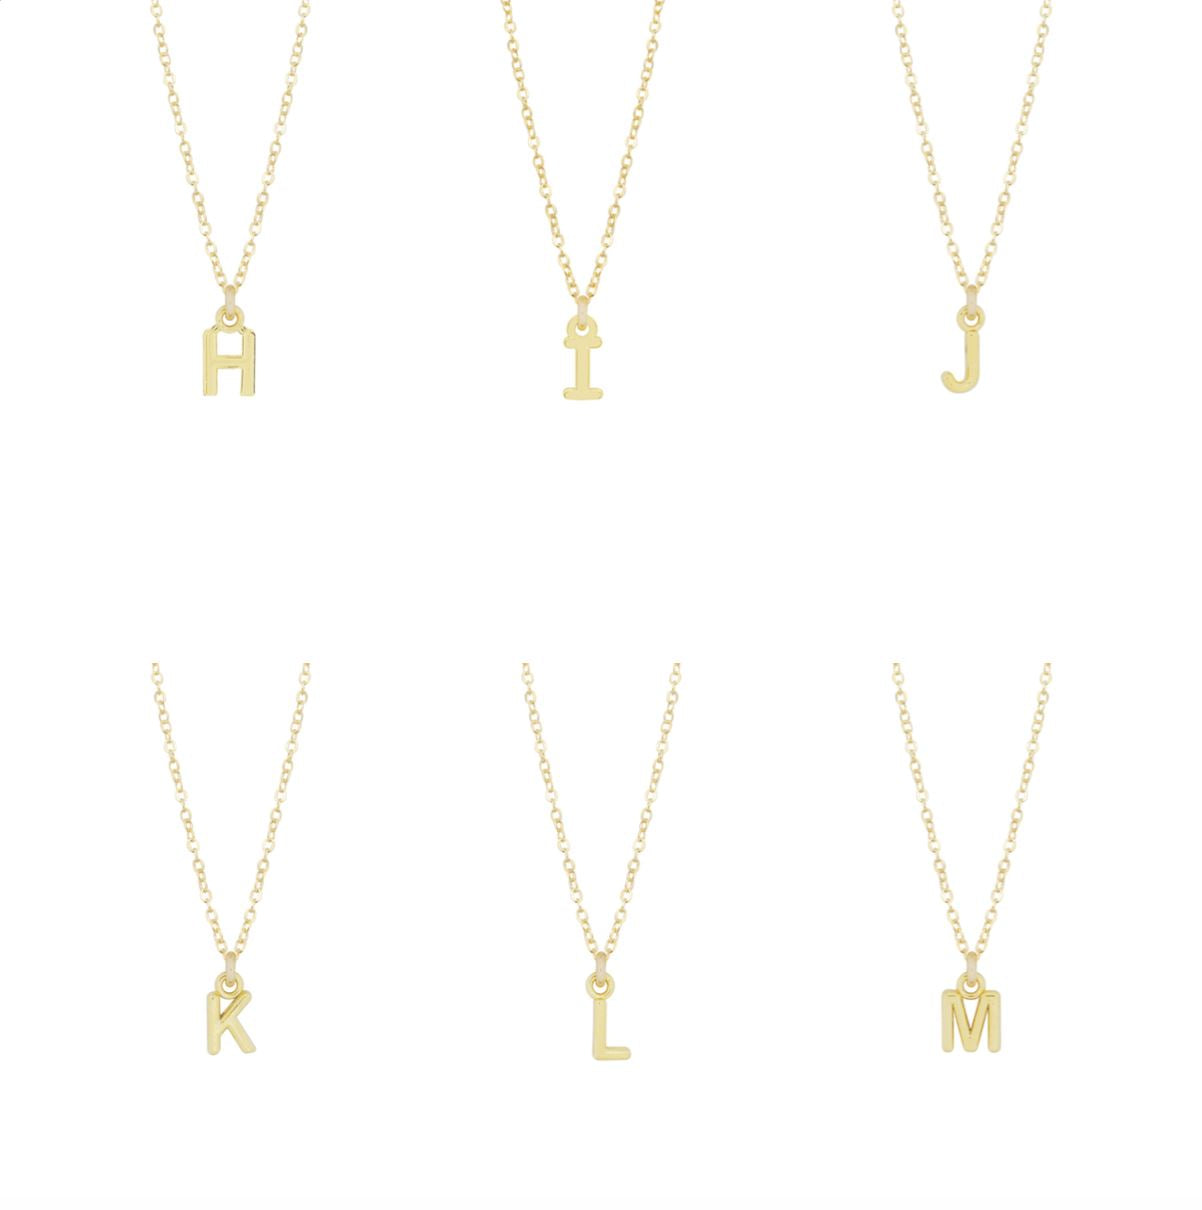 "Dainty gold Initial Necklaces ""H, I, J, K, L, M""  shown on a white background, made by Katie Dean Jewelry."